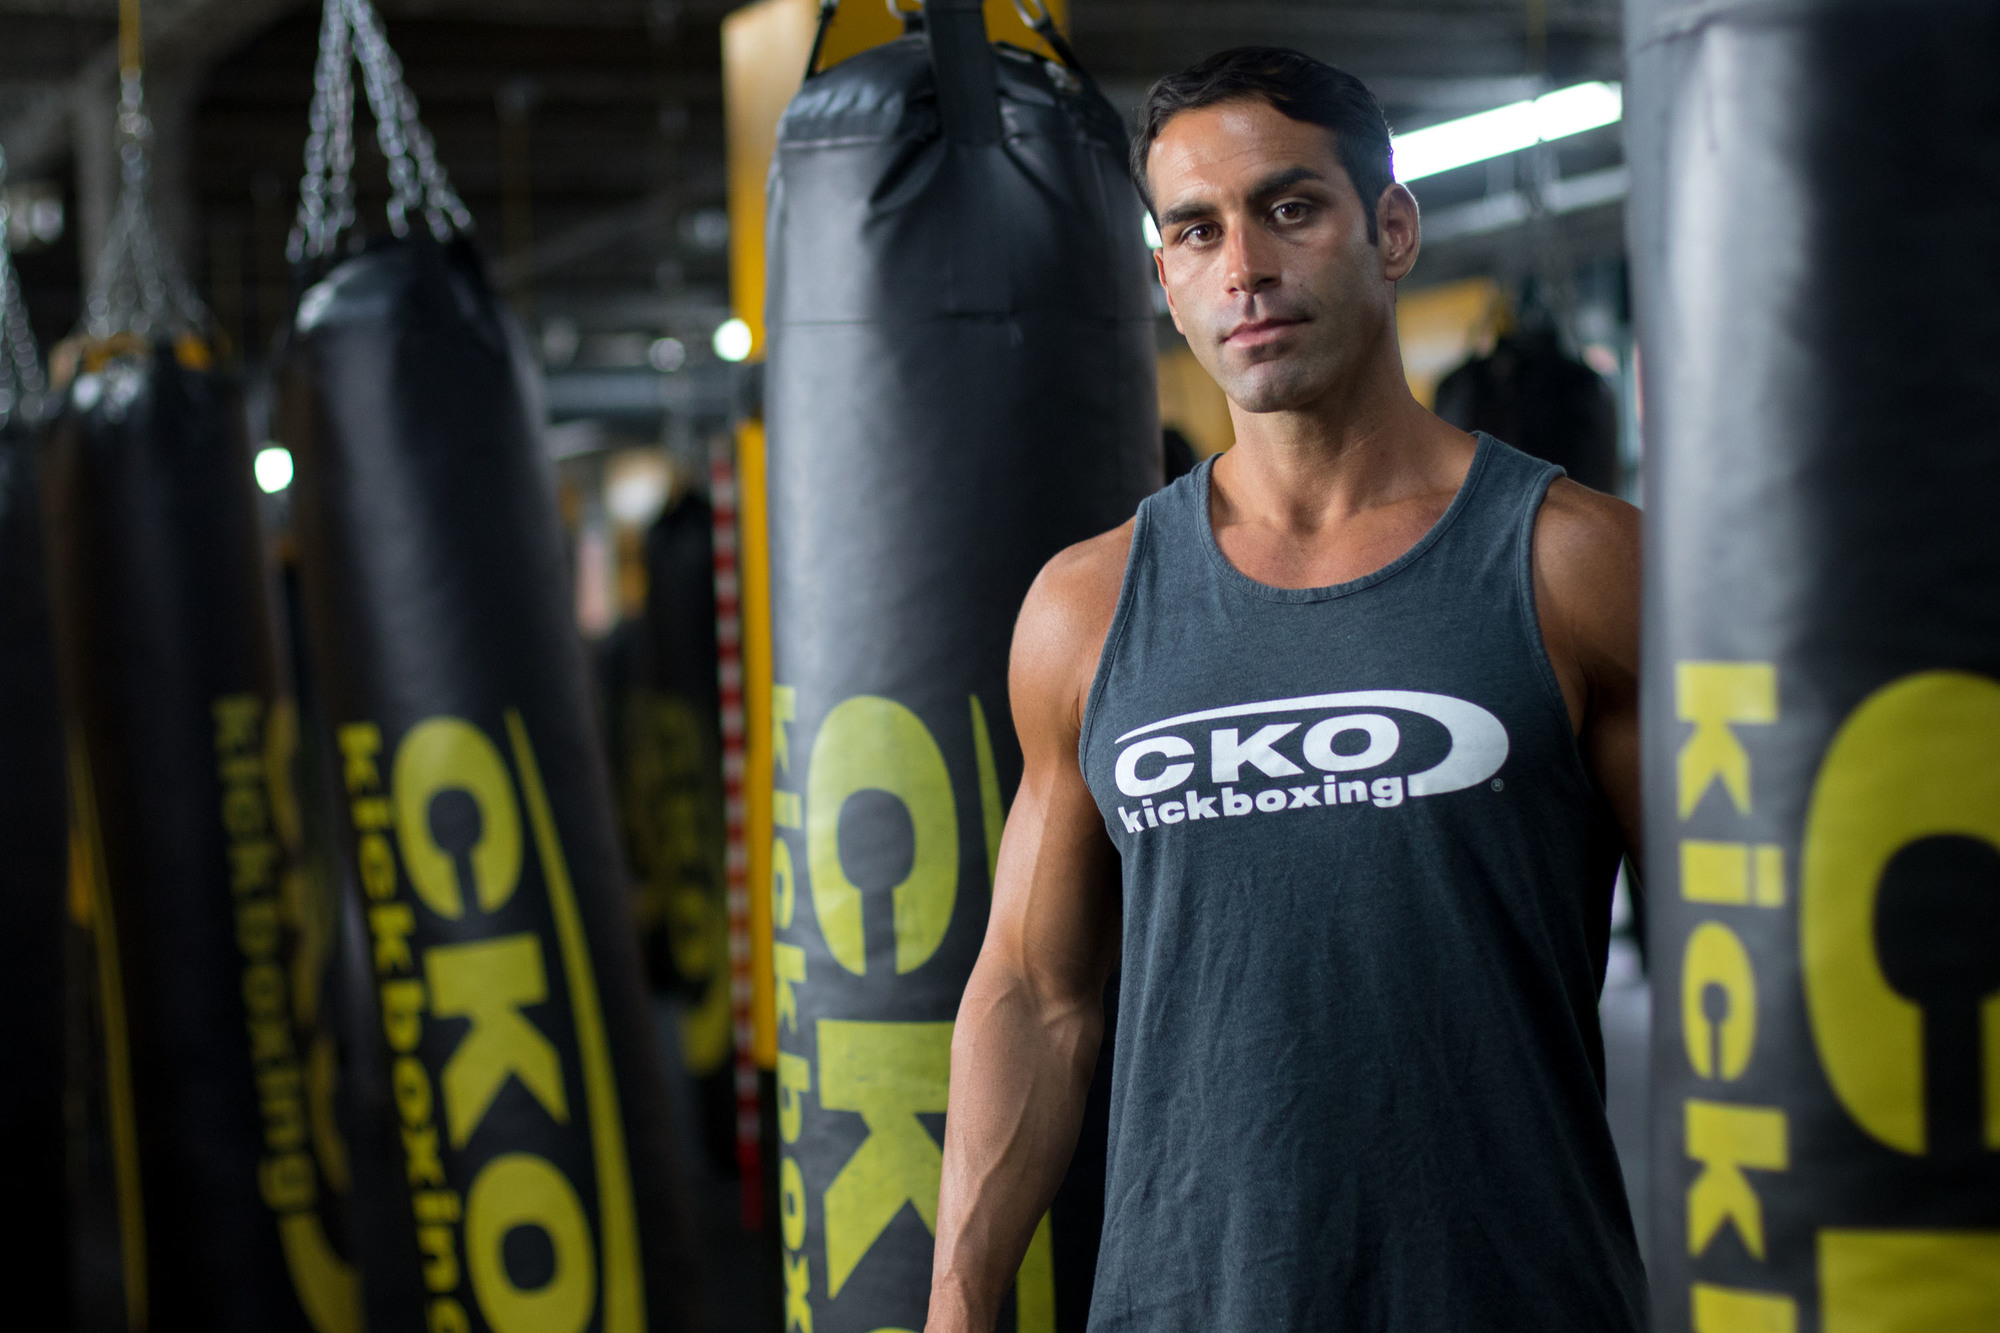 Personal trainer standing behind punching bag